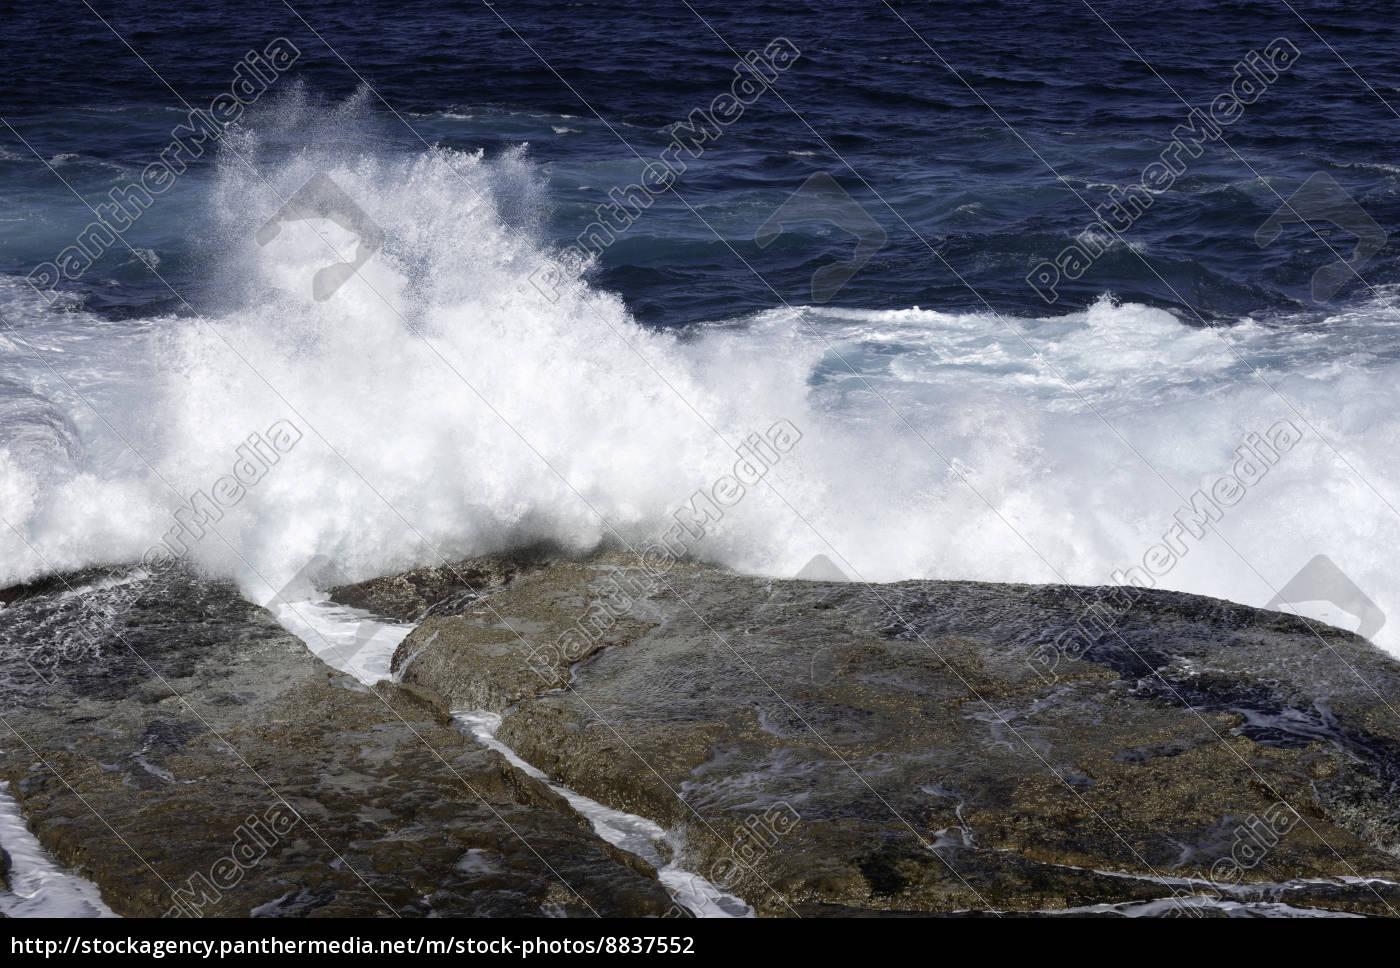 ocean, waves, crashing, on, rocks - 8837552